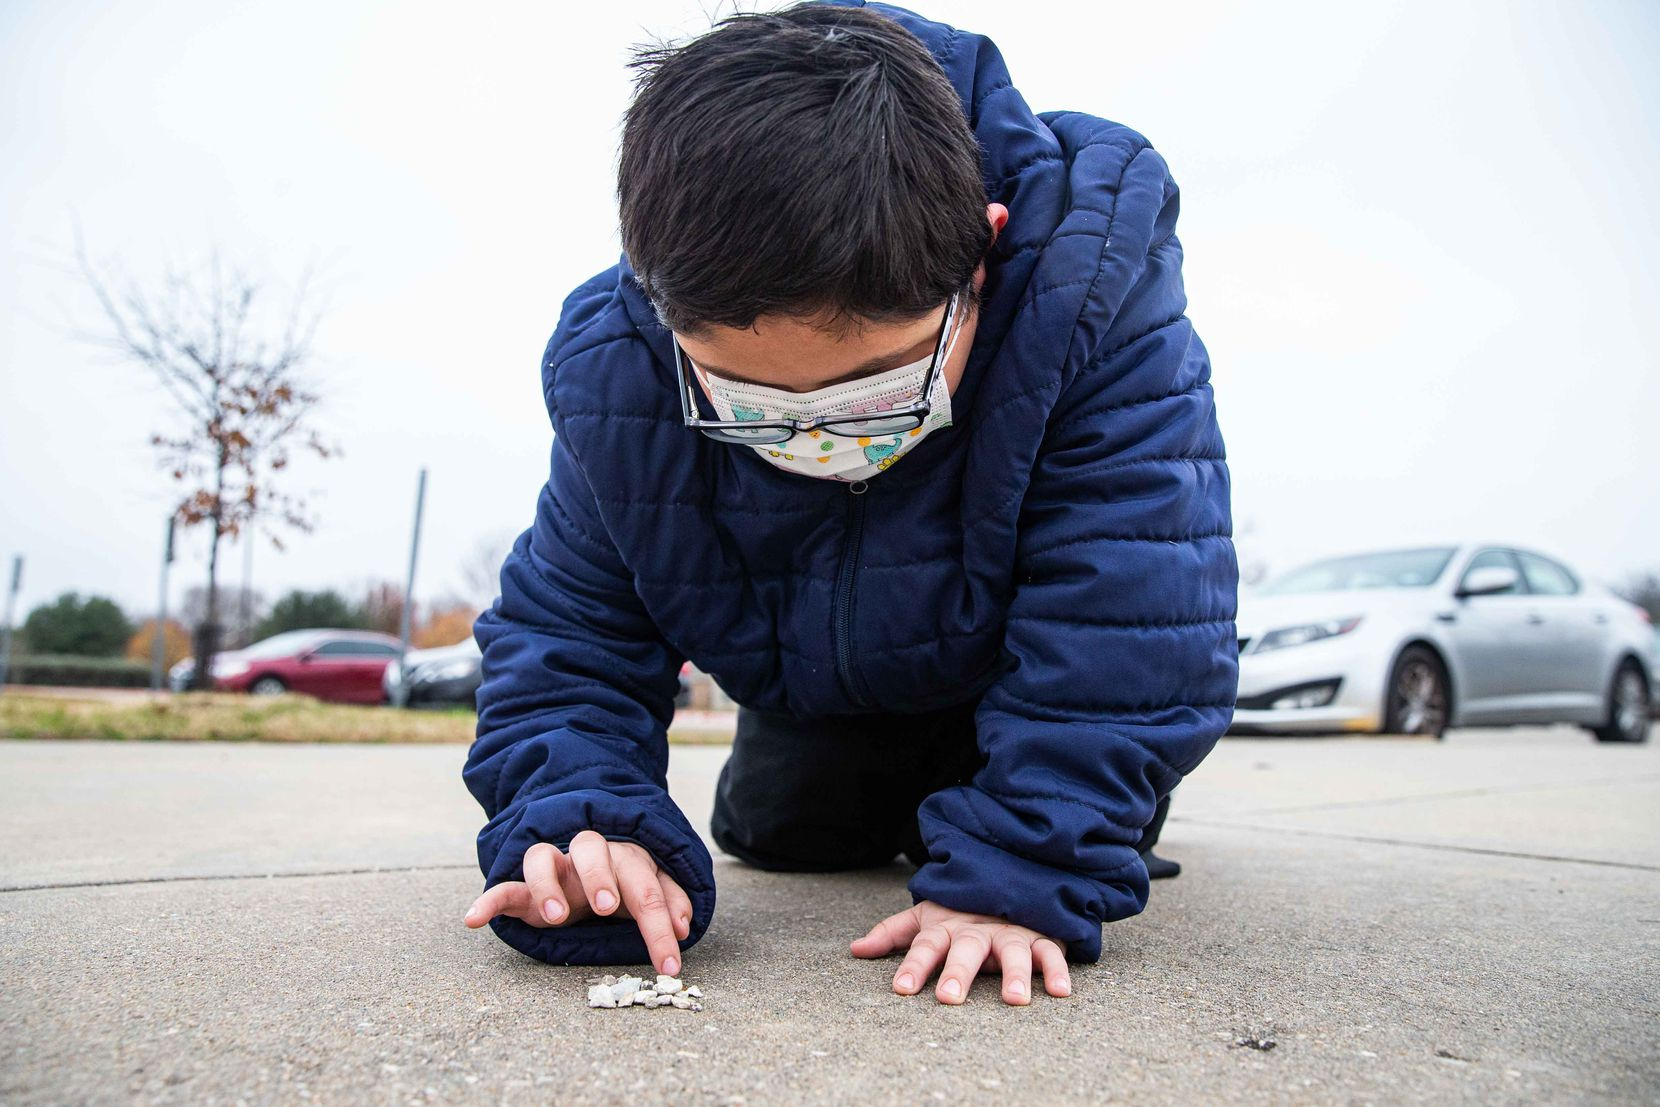 David Sanroman, 7, counts some rocks that he picked up from the ground at Frank Guzick Elementary School in Dallas on Tuesday, December 15, 2020. His mother Rosa Mendoza says that Sanroman has thrived since returning to in-person school after  months of learning virtually.